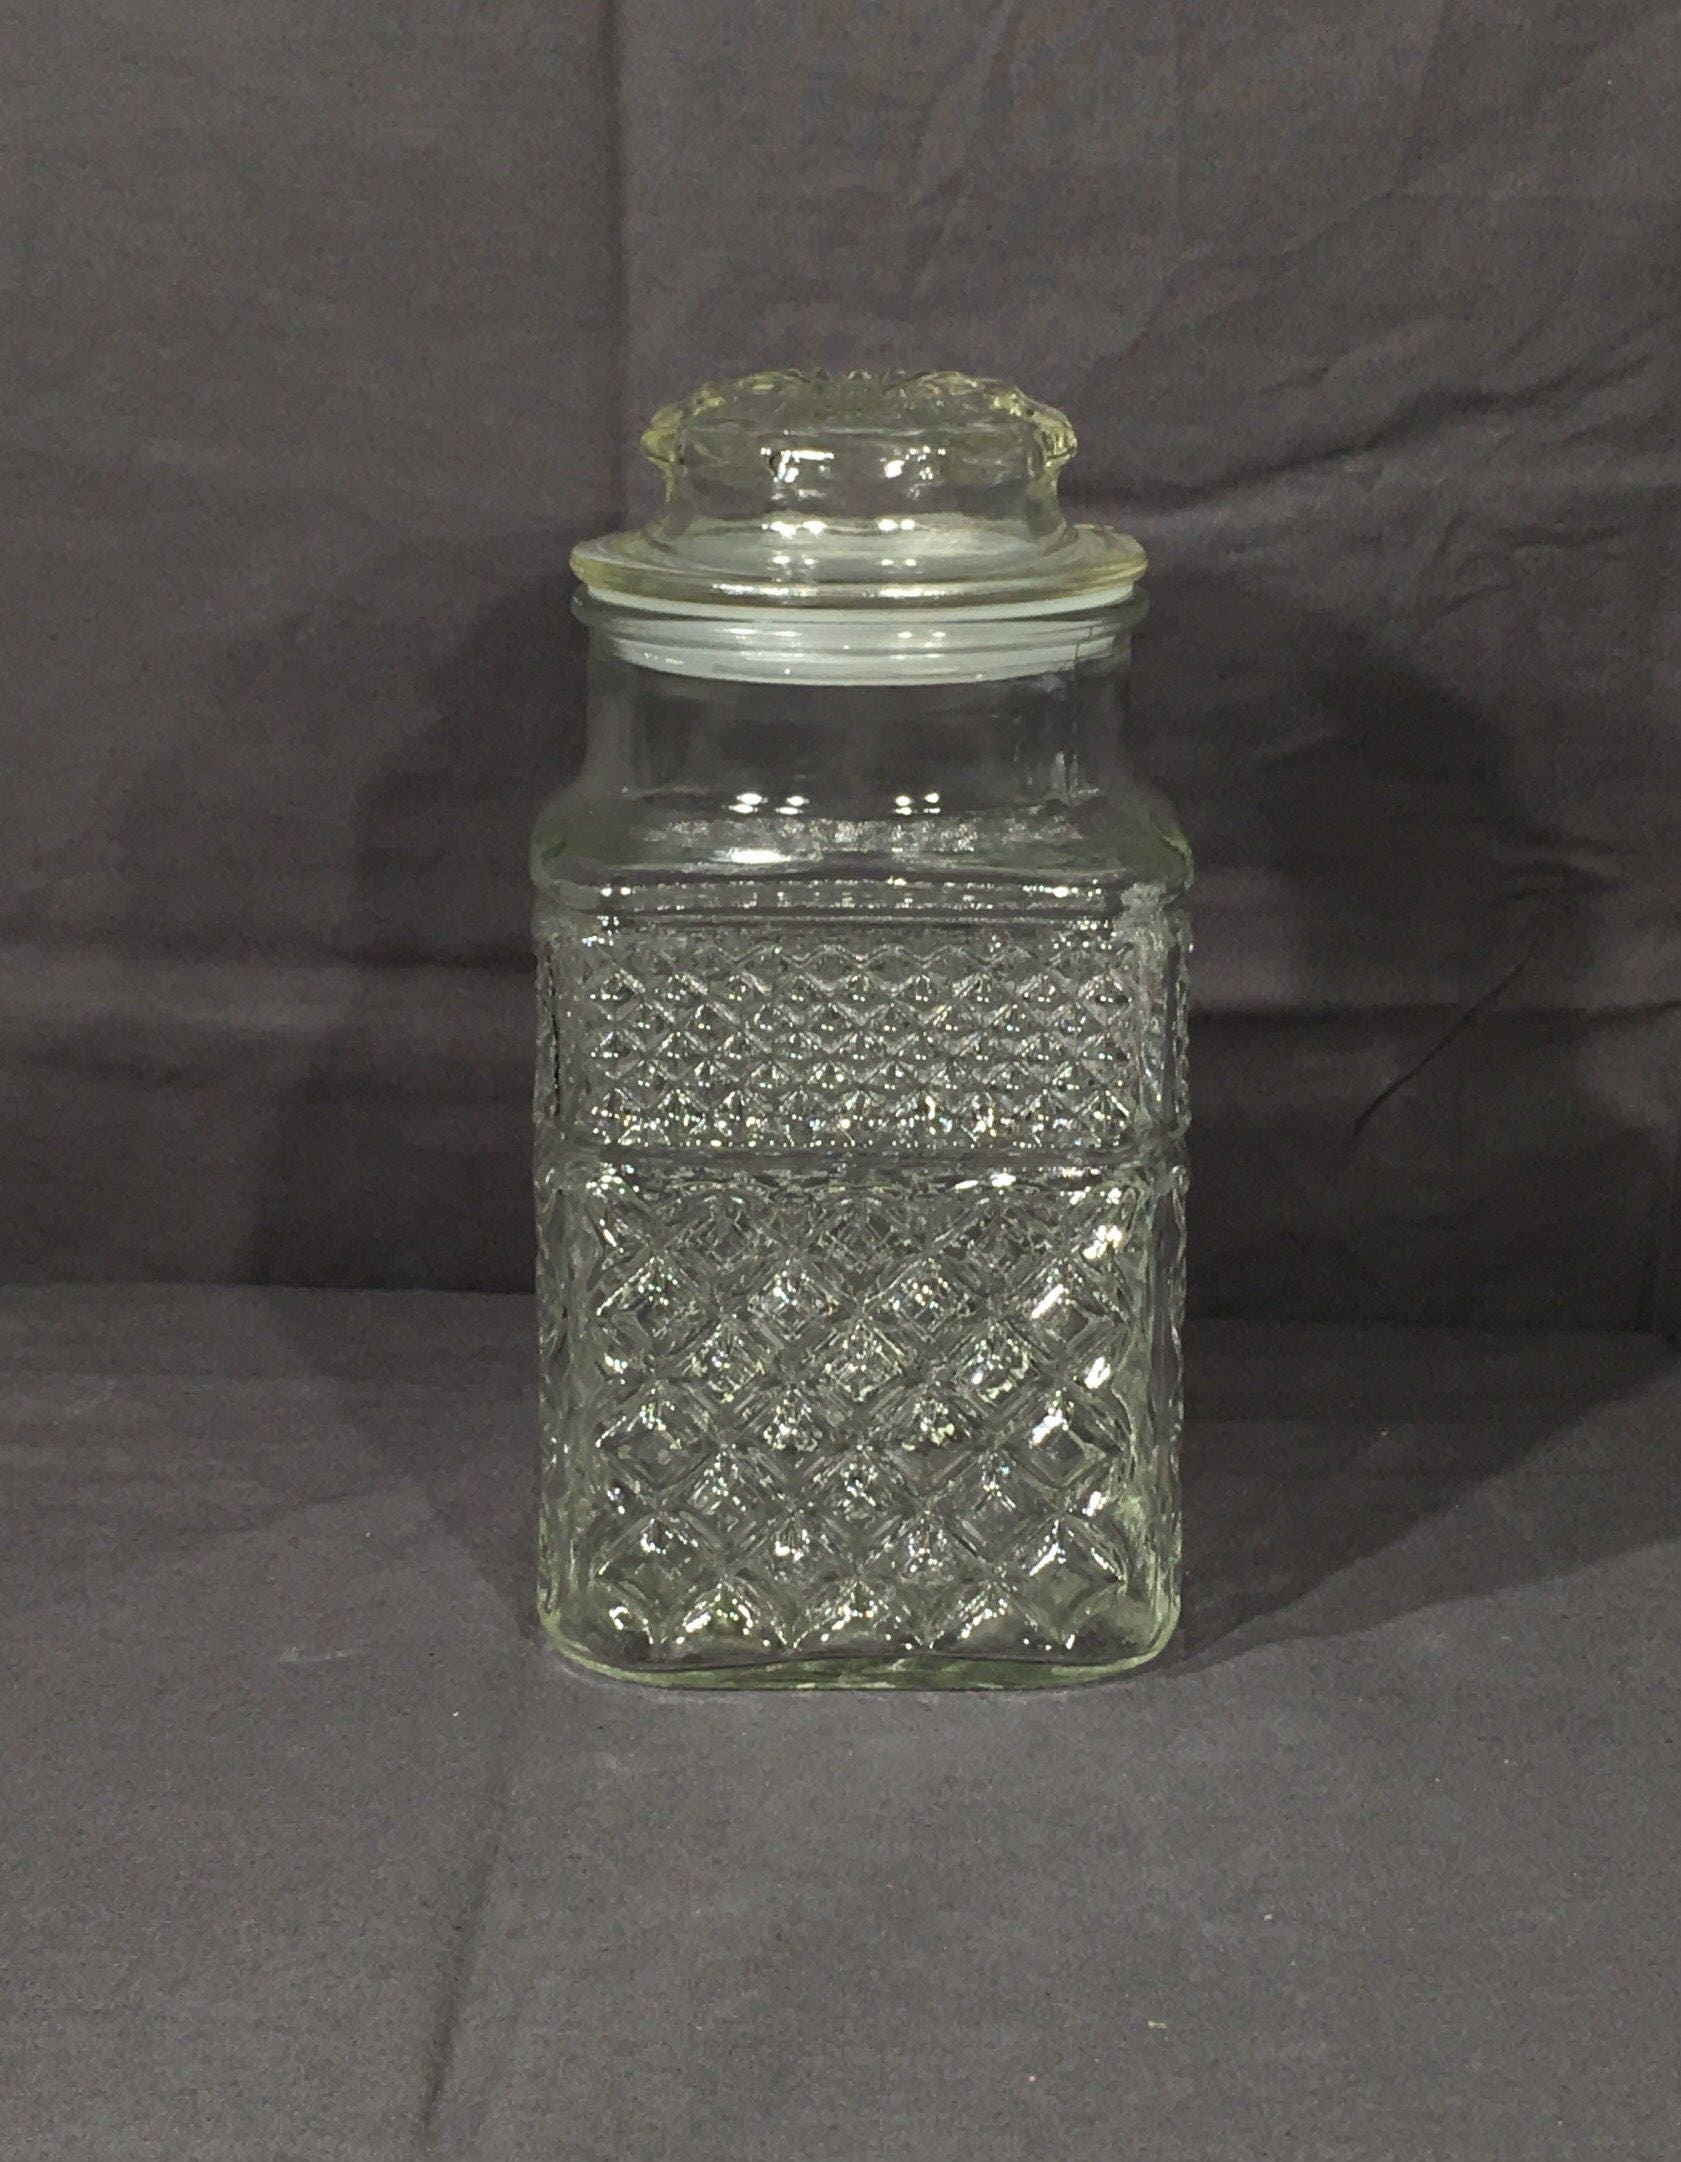 Vintage Kitchen Canister, Glass Cookie Jar, Anchor Hocking, Wexford Diamond  Gingham, Clear Decorative, Apothecary Storage, Candy Decor